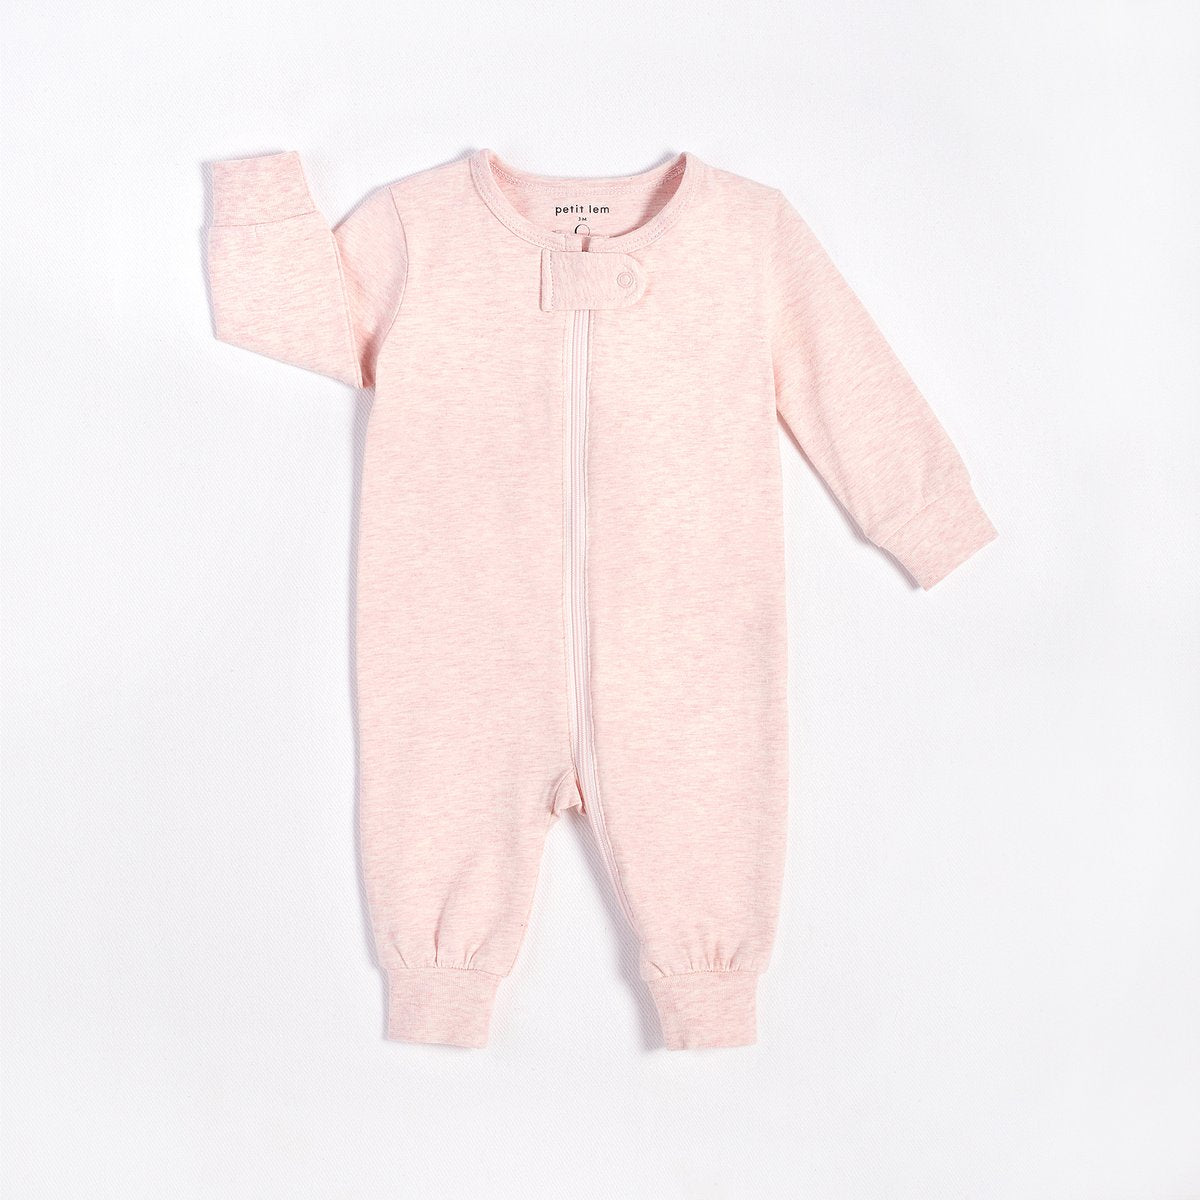 Heather Pink Playsuit in Organic Cotton - Lullaby's Boutique